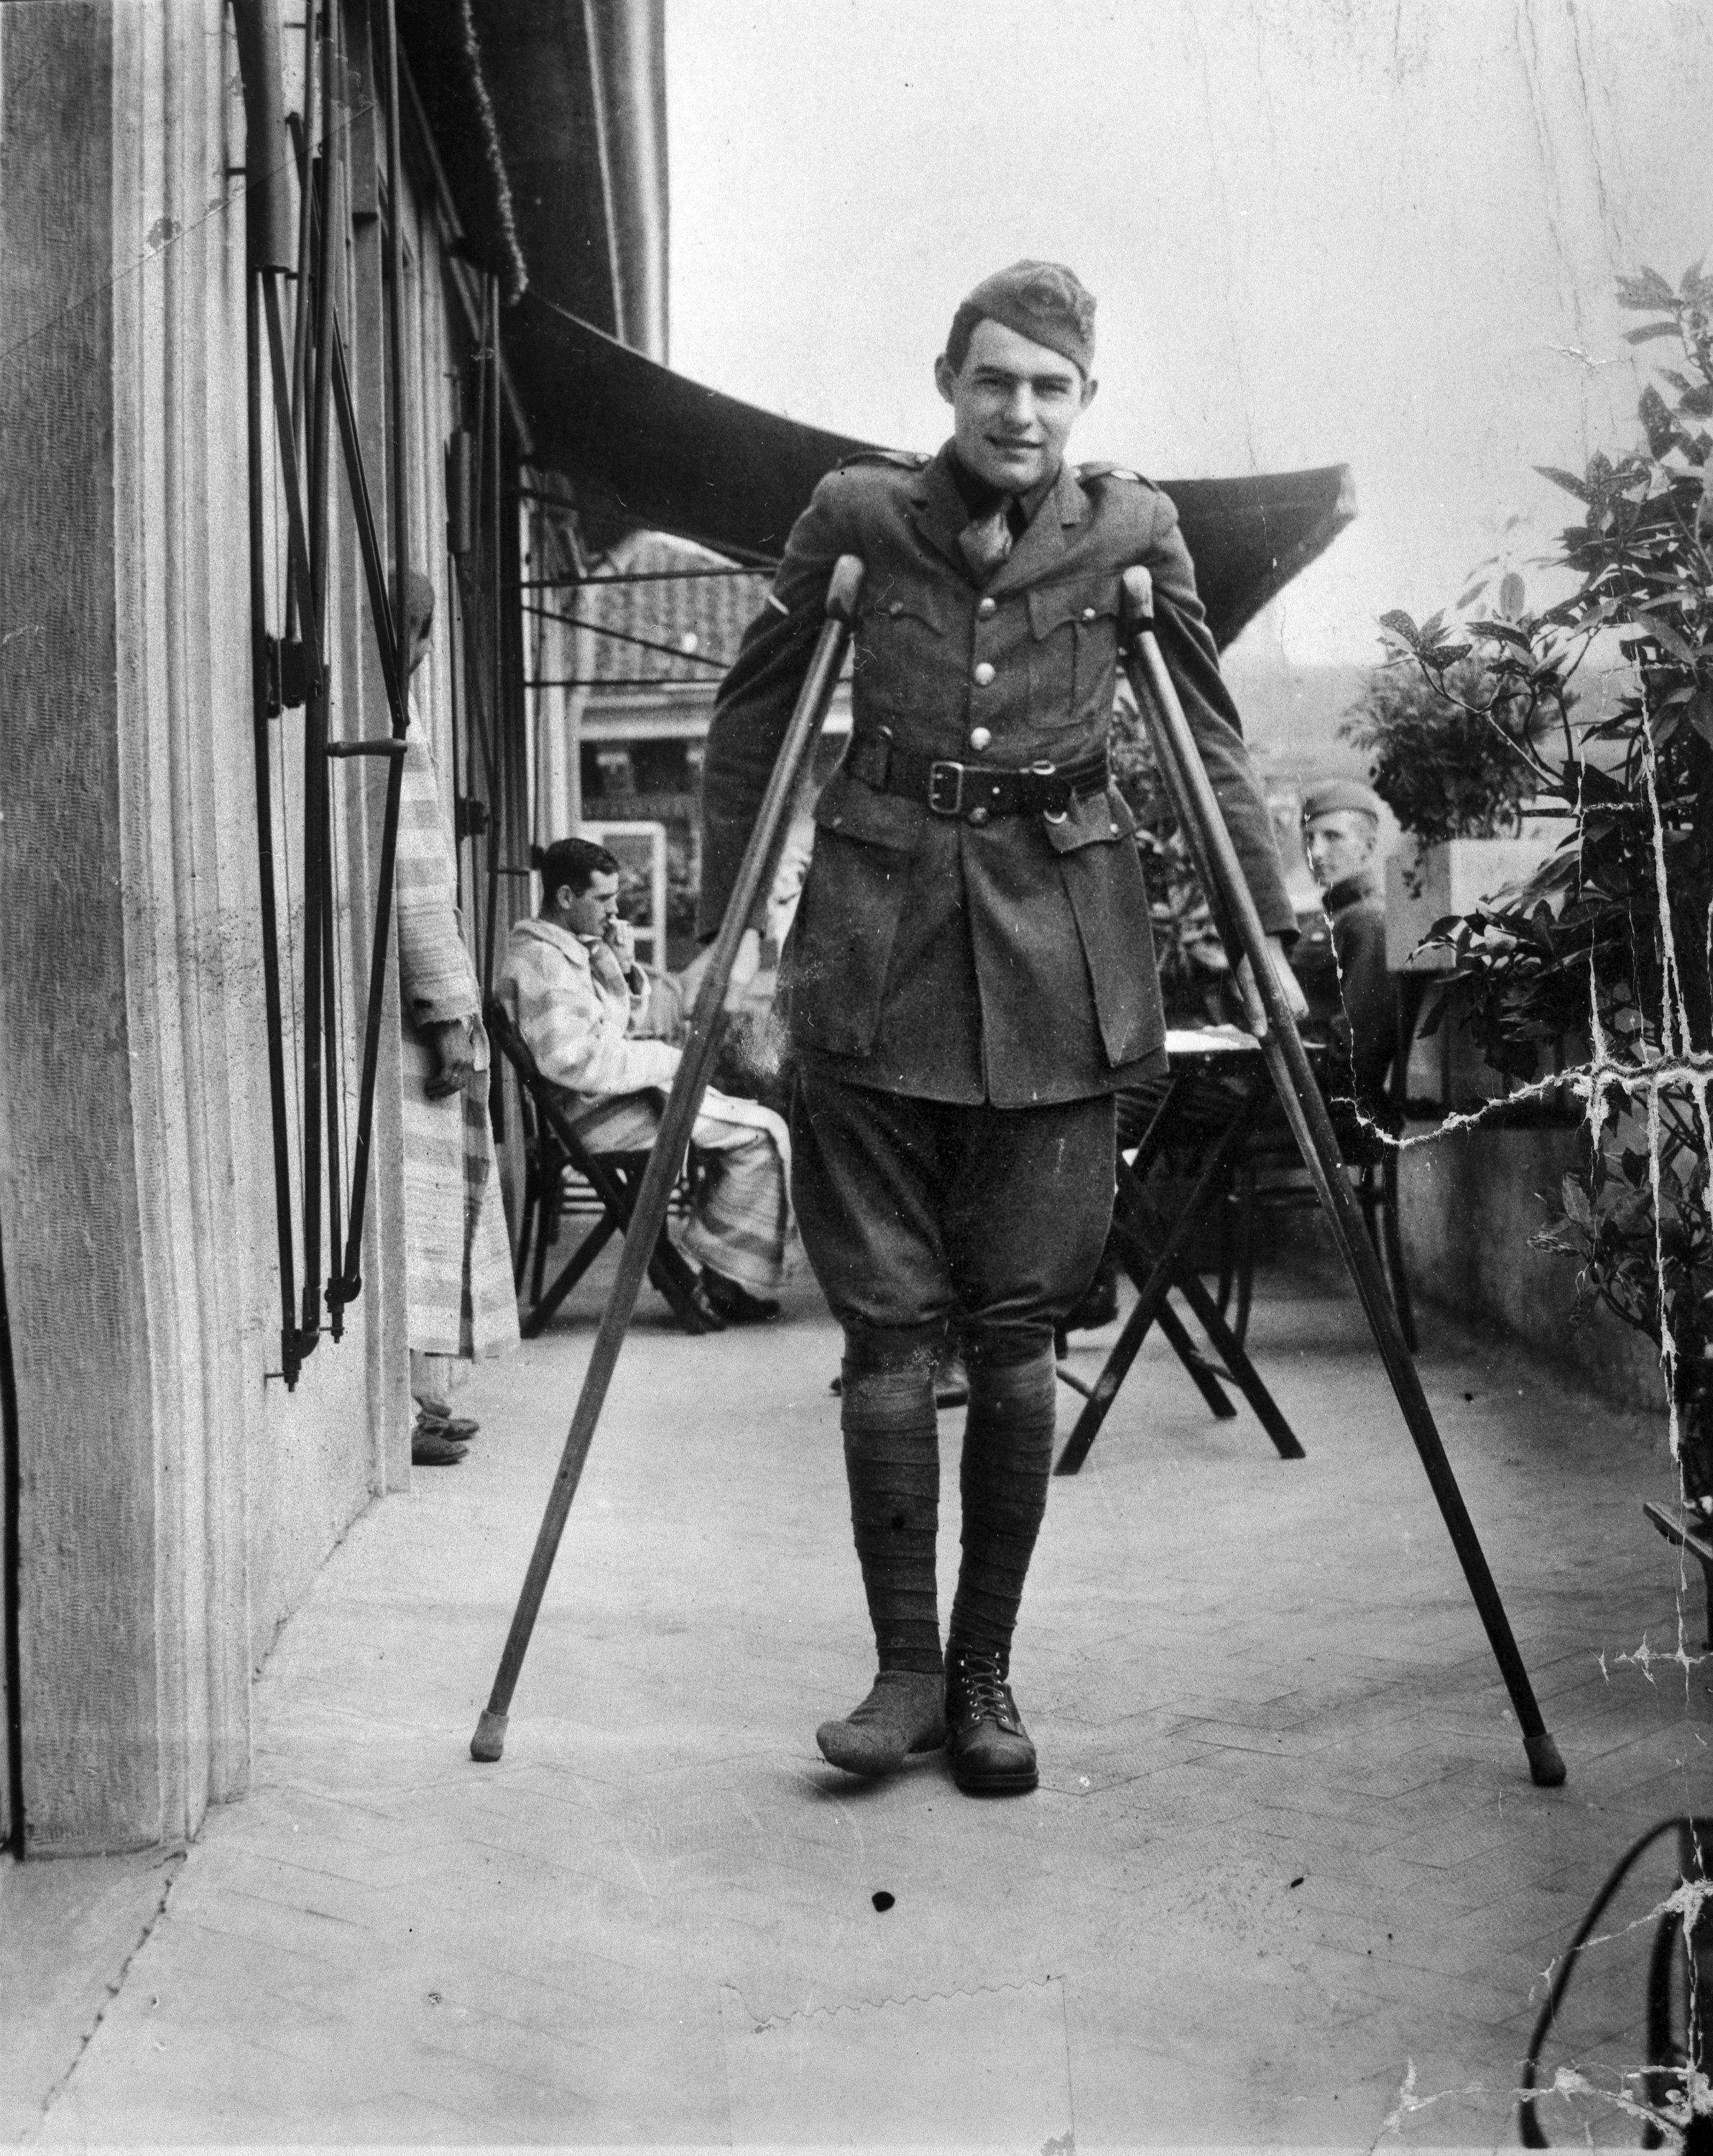 This 1918 photo provided by the John F. Kennedy Library Foundation shows Ernest Hemingway on crutches in Milan, Italy, where he was convalescing after being wounded while serving as an ambulance driver during World War I. (AP Photo)